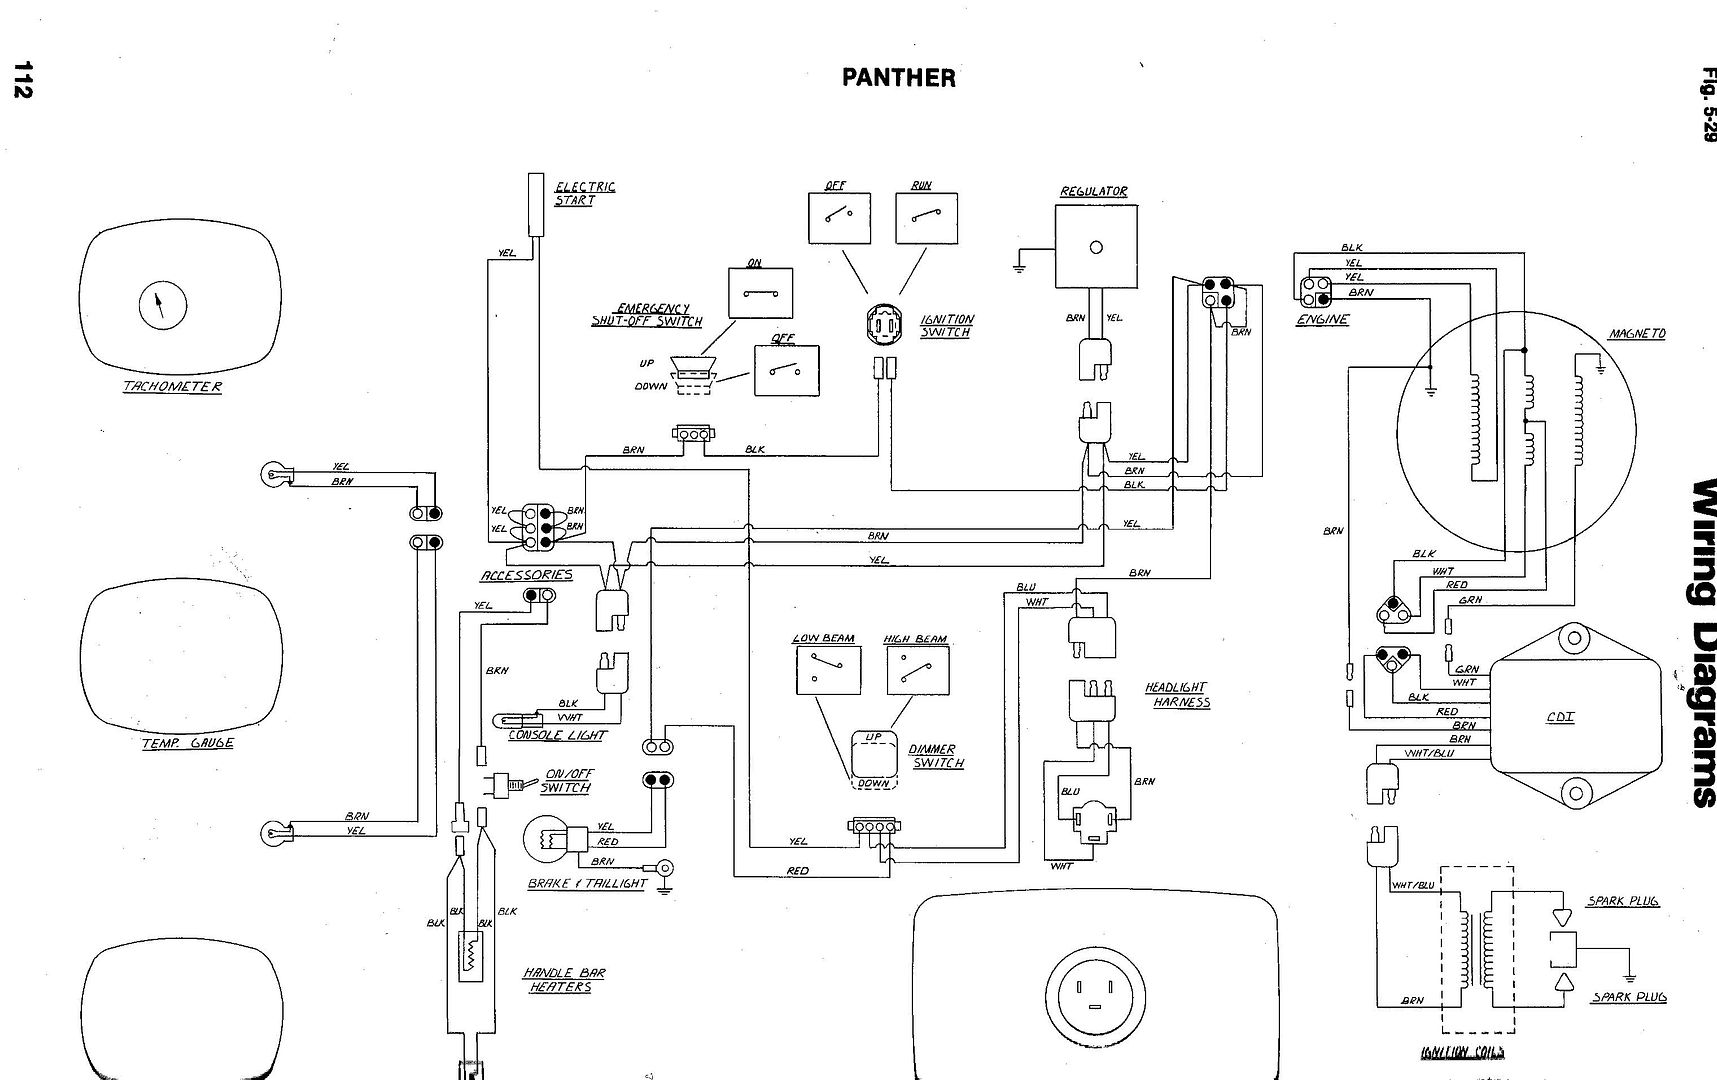 hight resolution of arctic cat cougar wiring schematic wiring diagram today 99 mercury cougar engine diagram snowmobile wiring schematics